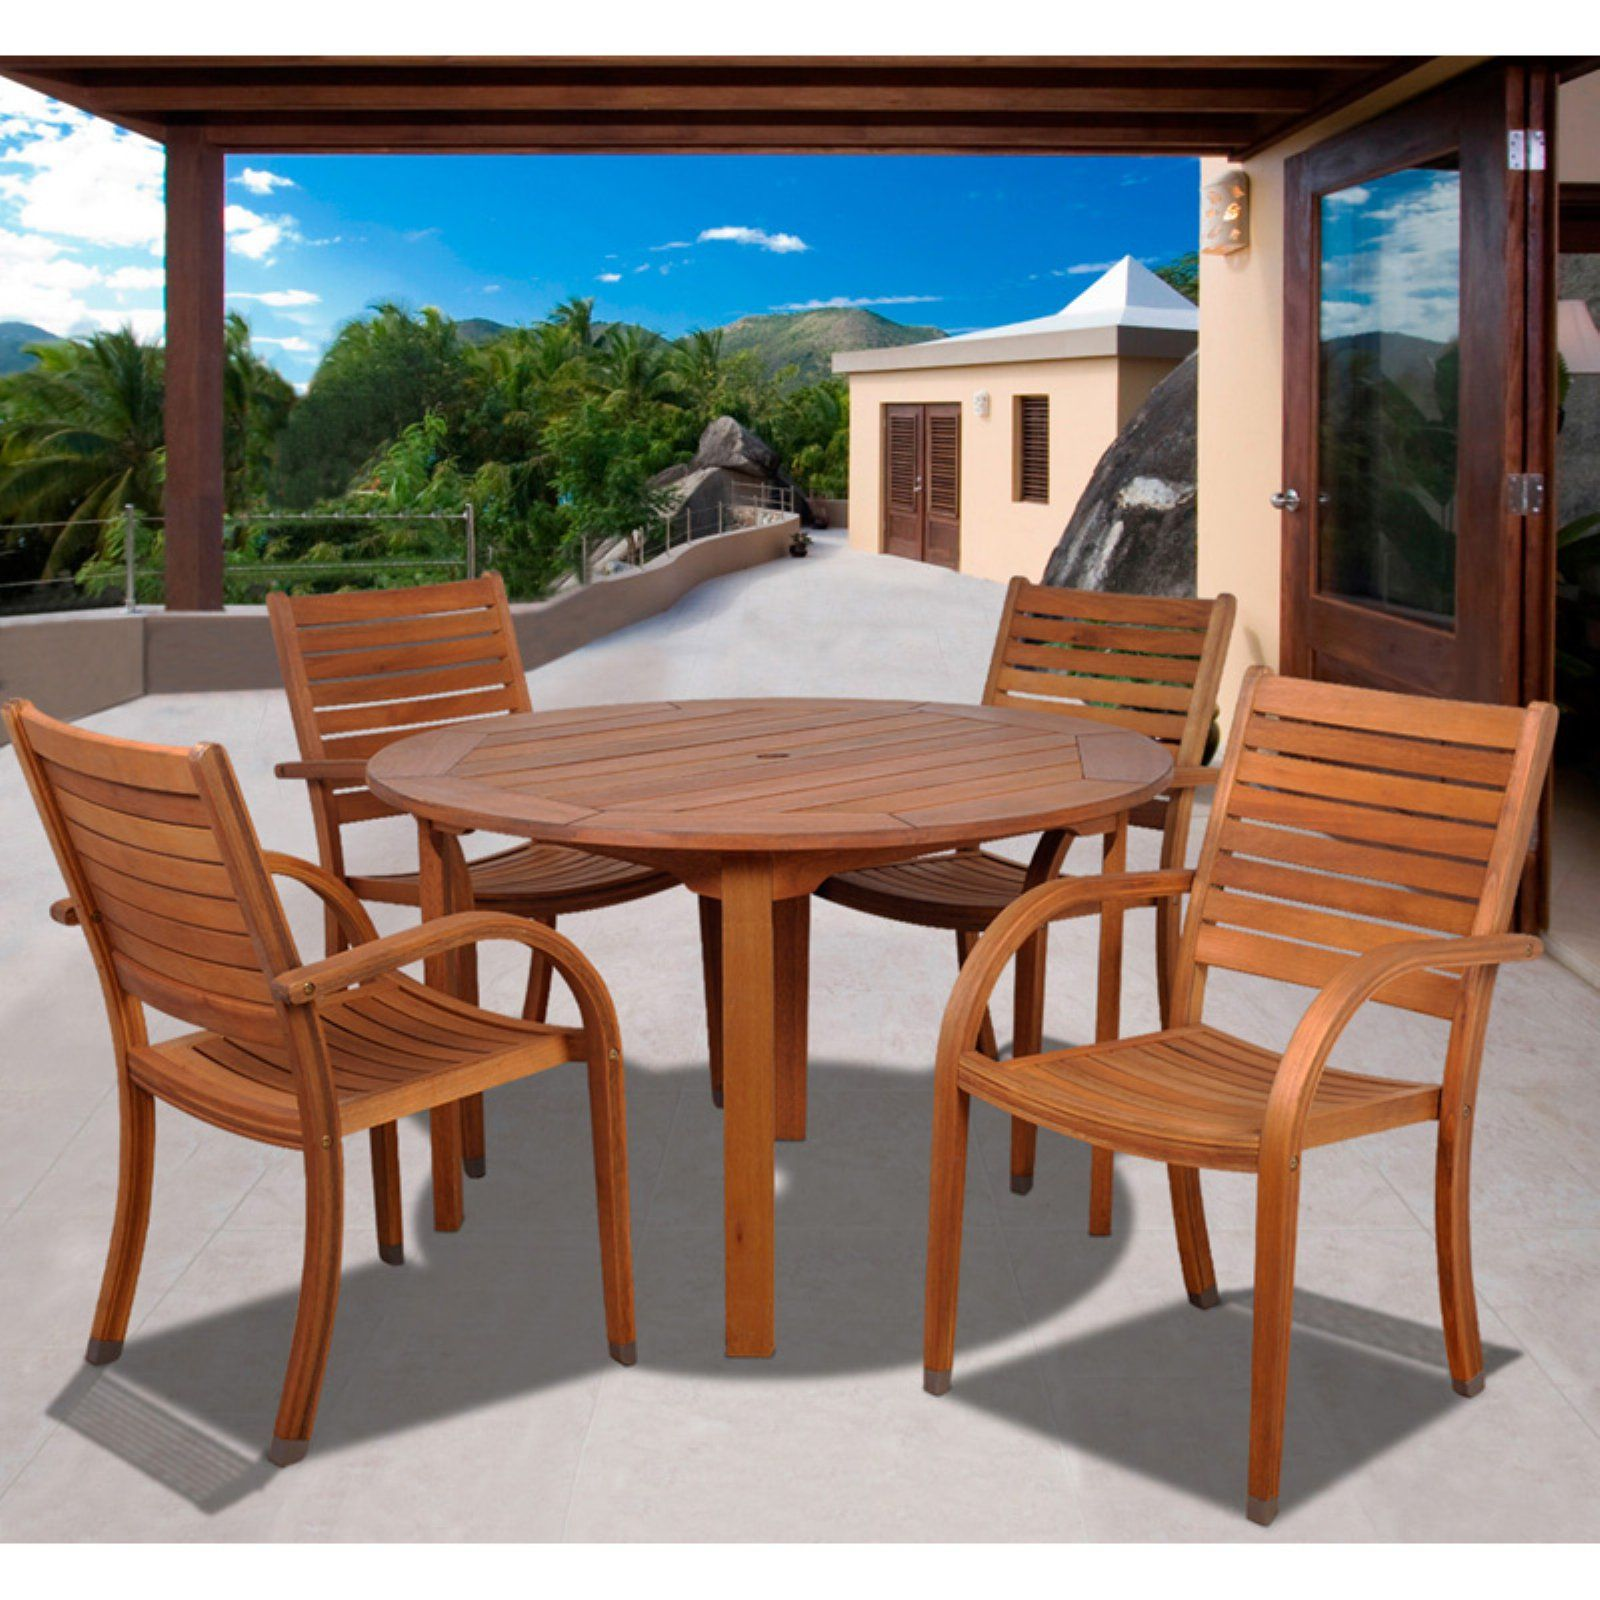 Outdoor Amazonia Kentucky 5 Piece Round Eucalyptus Patio Dining